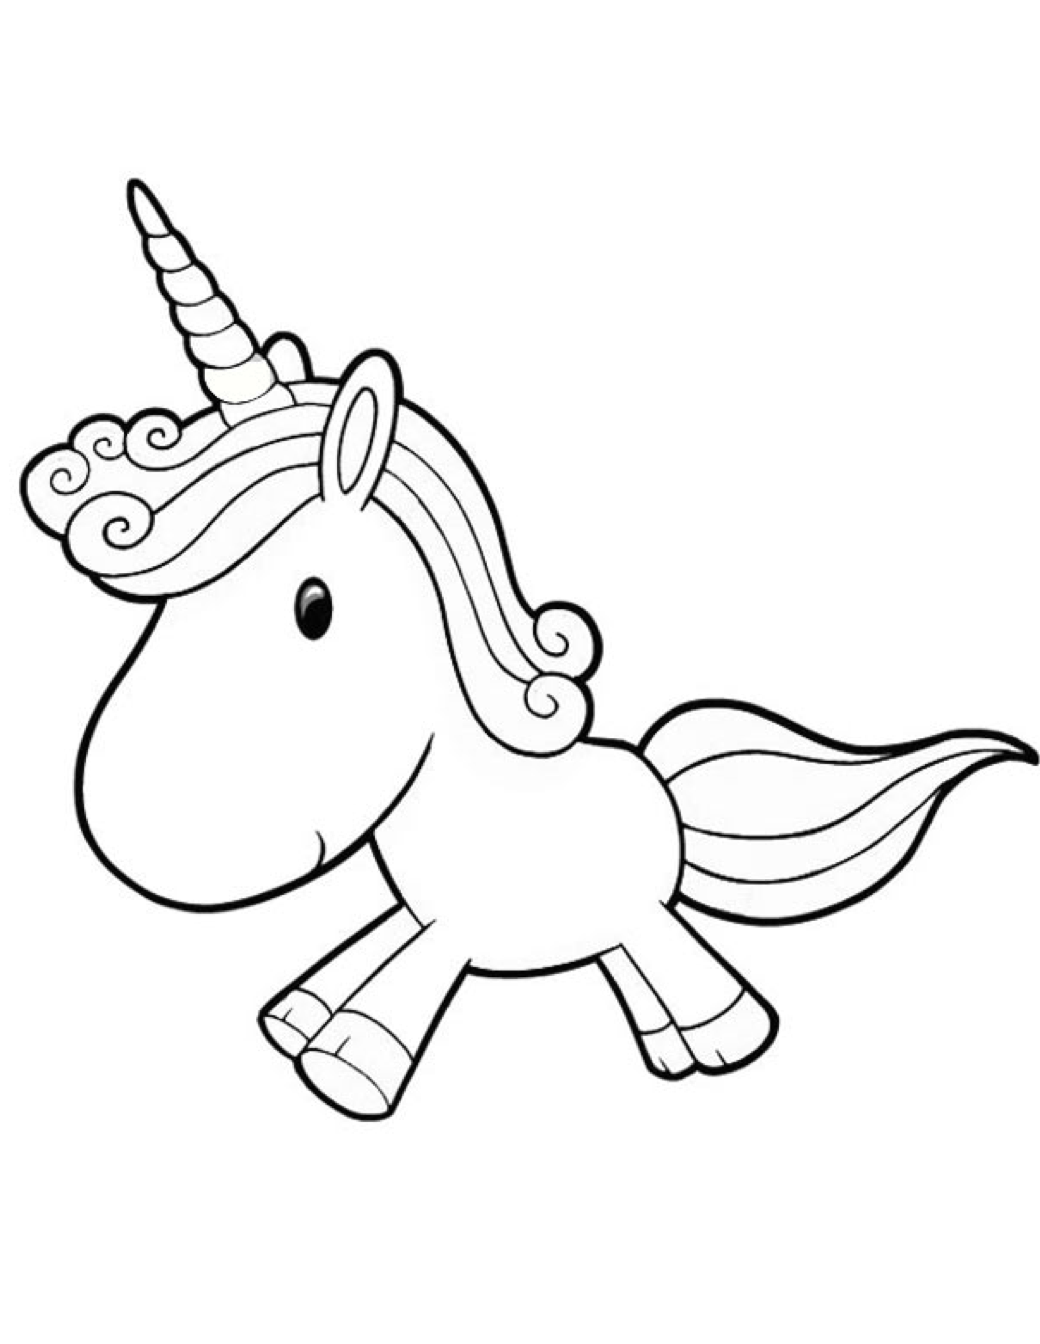 Cartoon Unicorn Coloring Page Amp Coloring Book